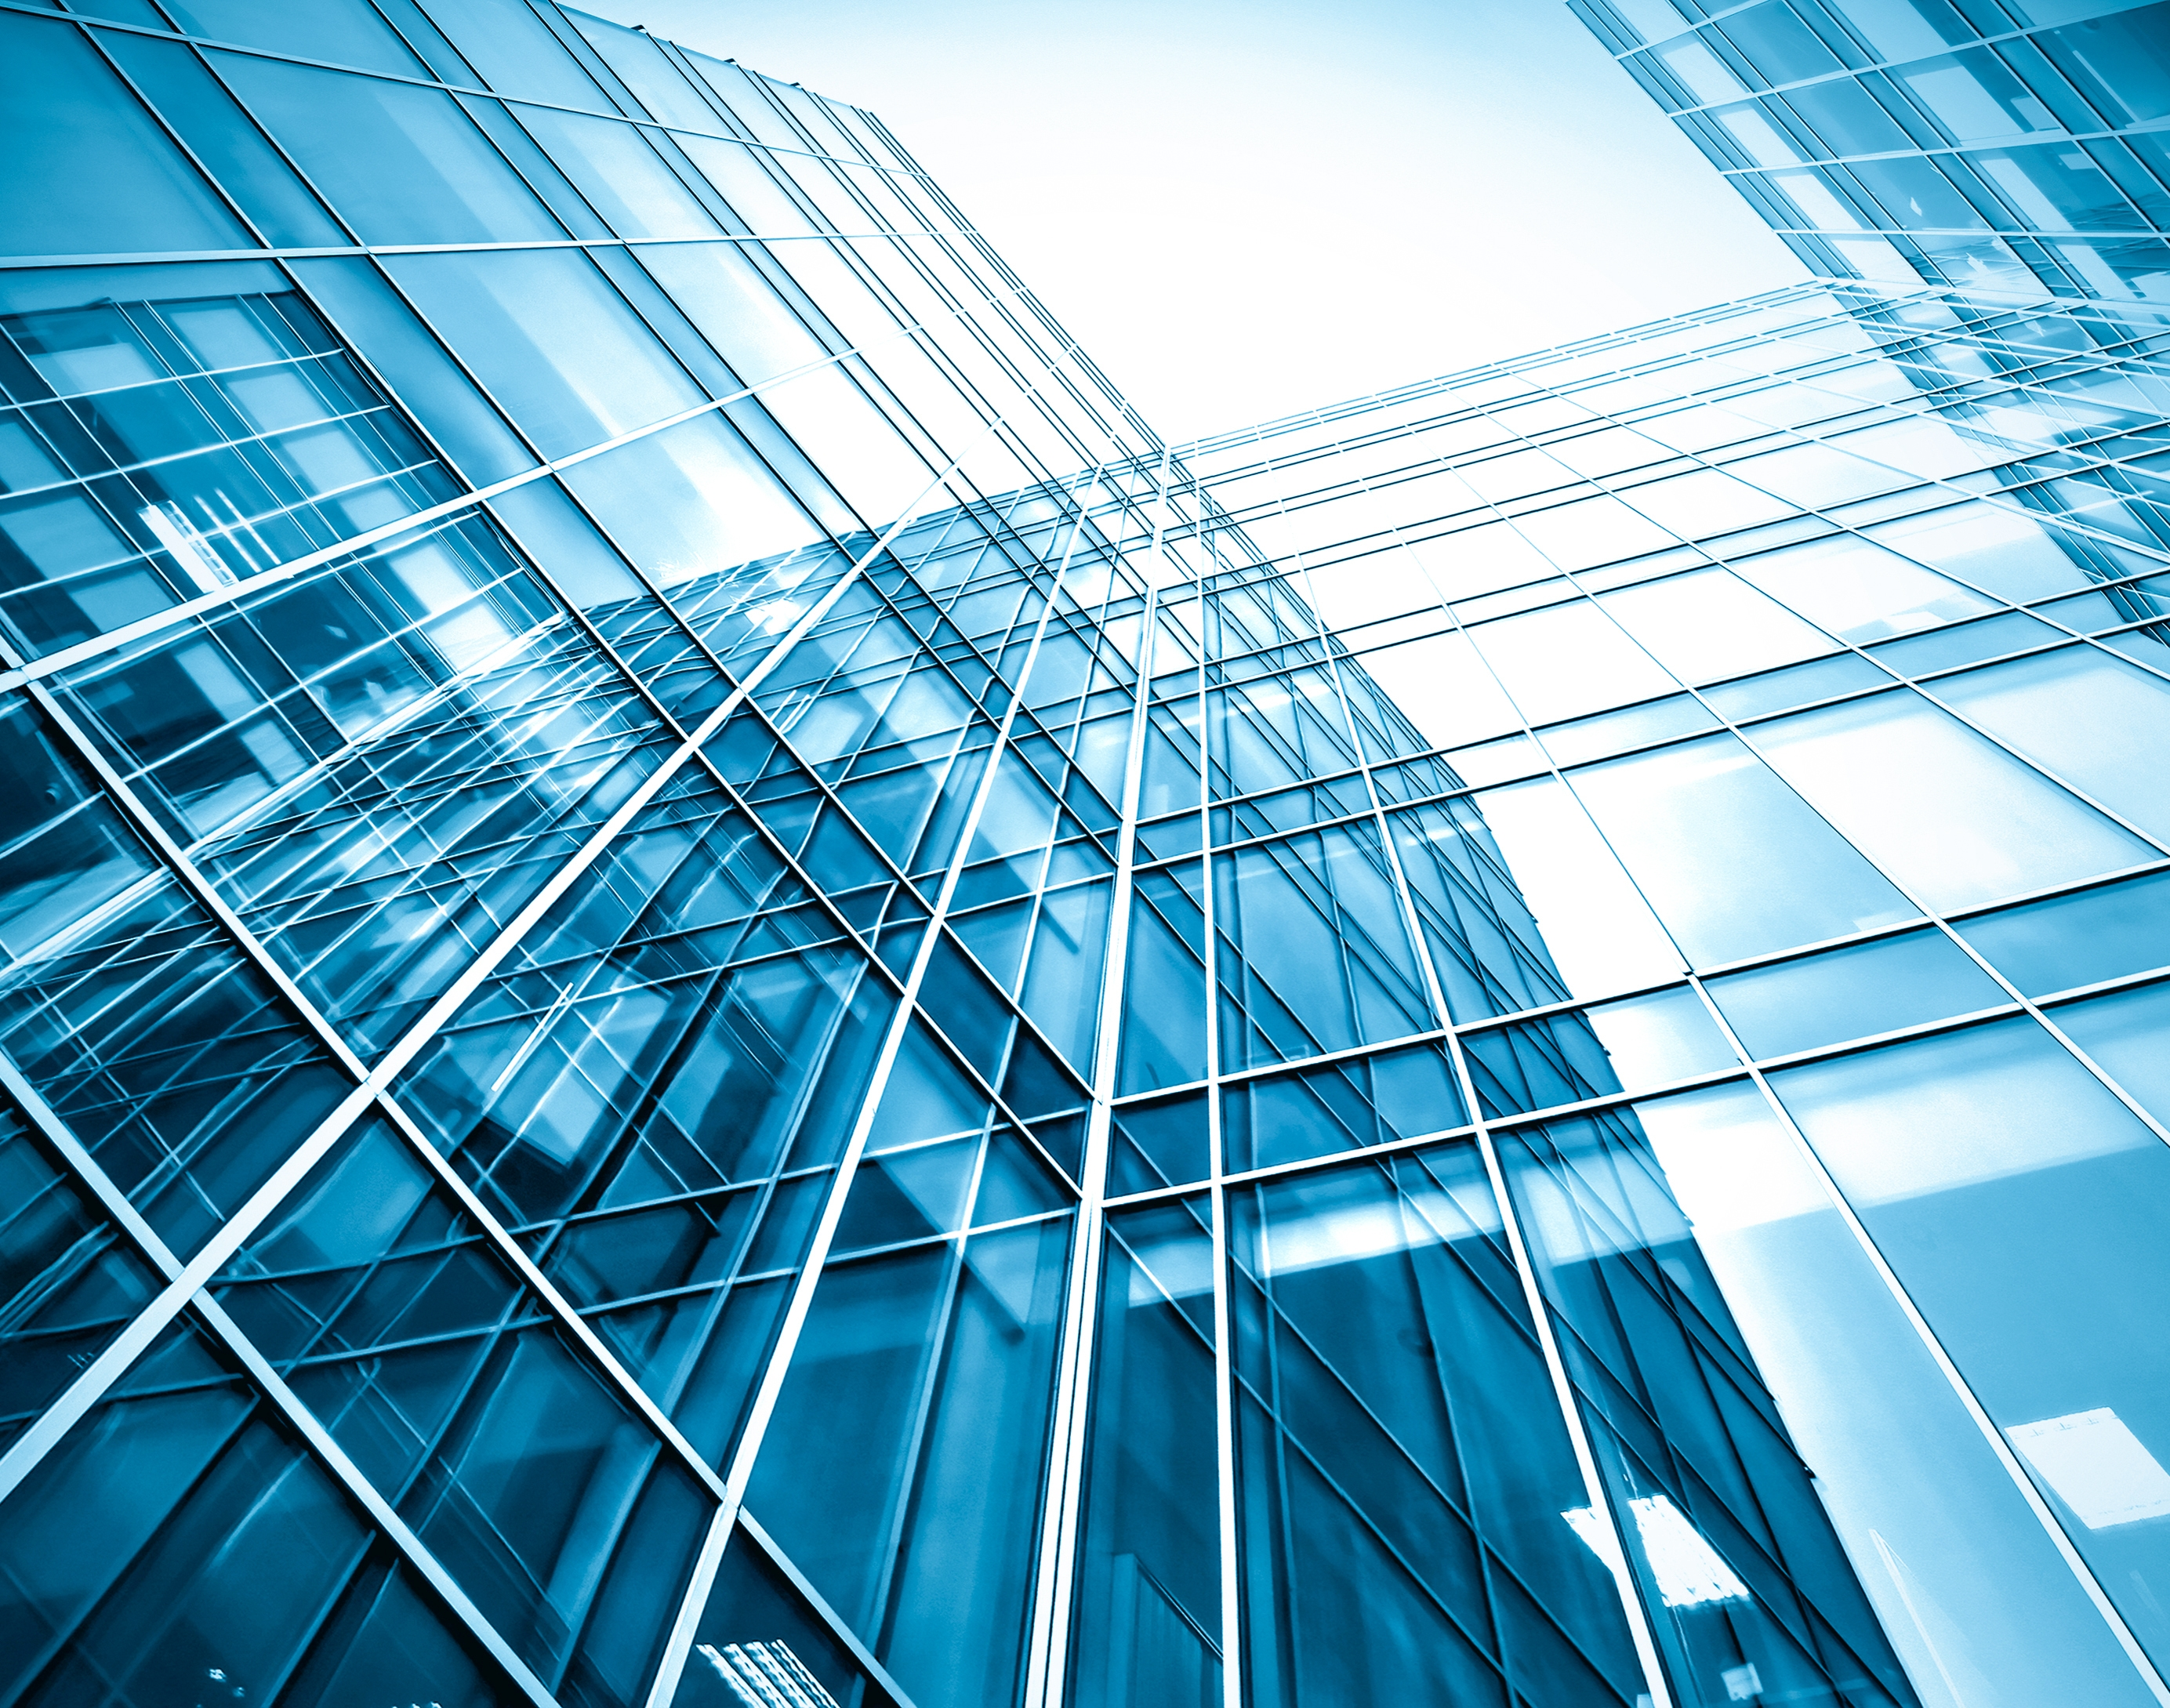 British Glass and Glass Technology Services will attend the Futurebuild event in March